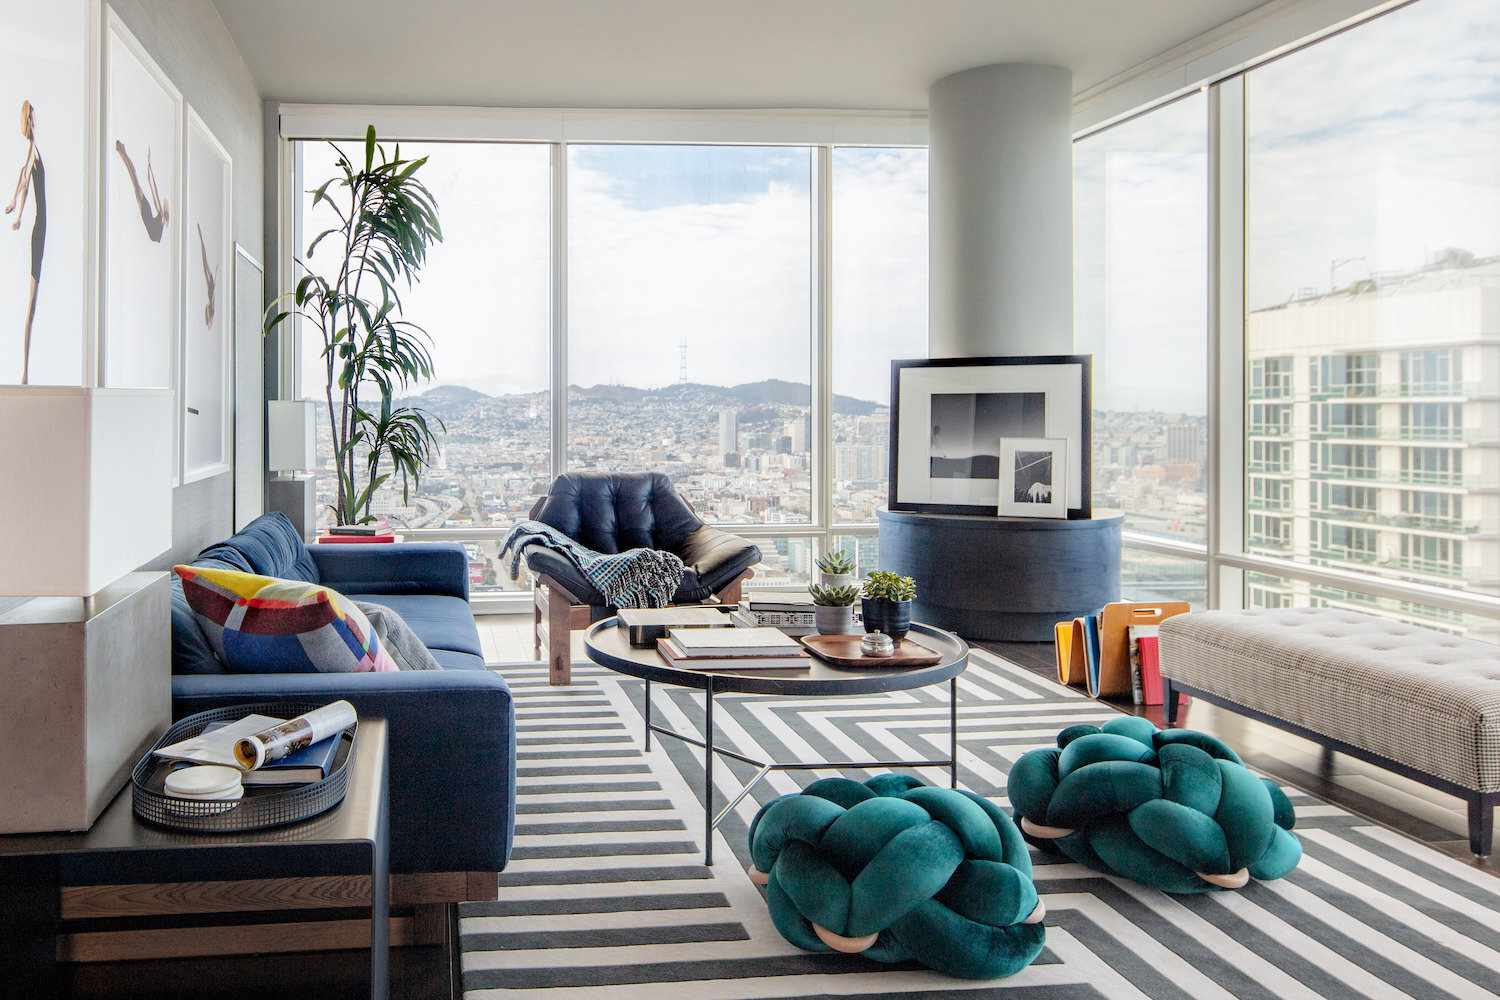 Bachelor pad with blue accents